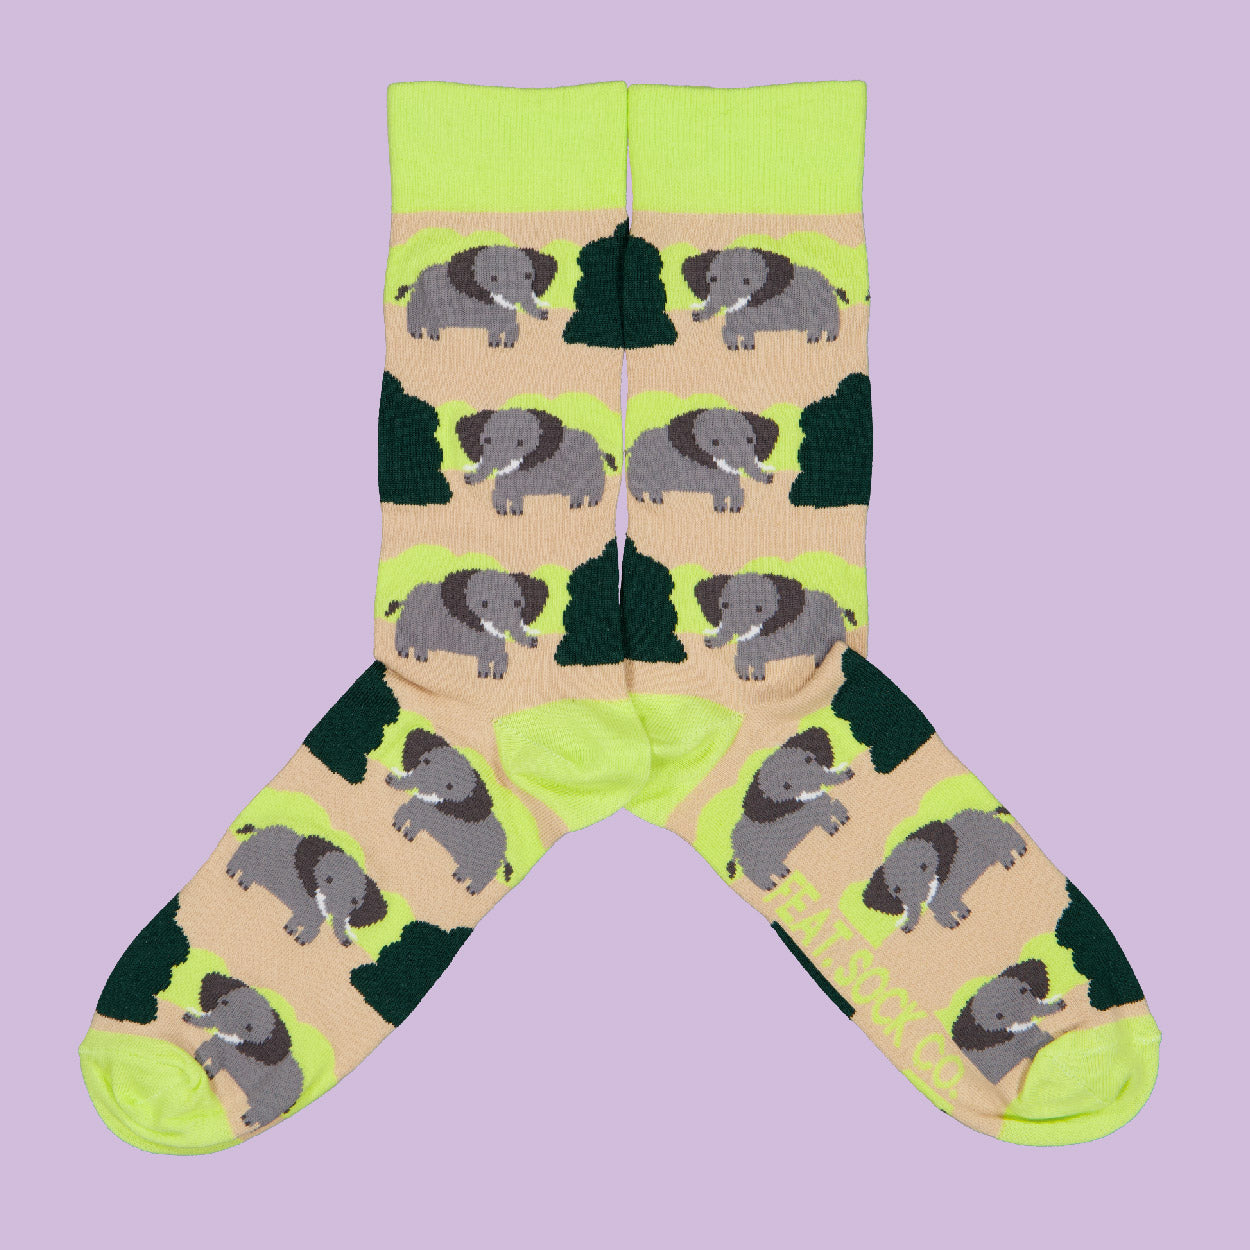 Ladies' Bushveld Elephant socks